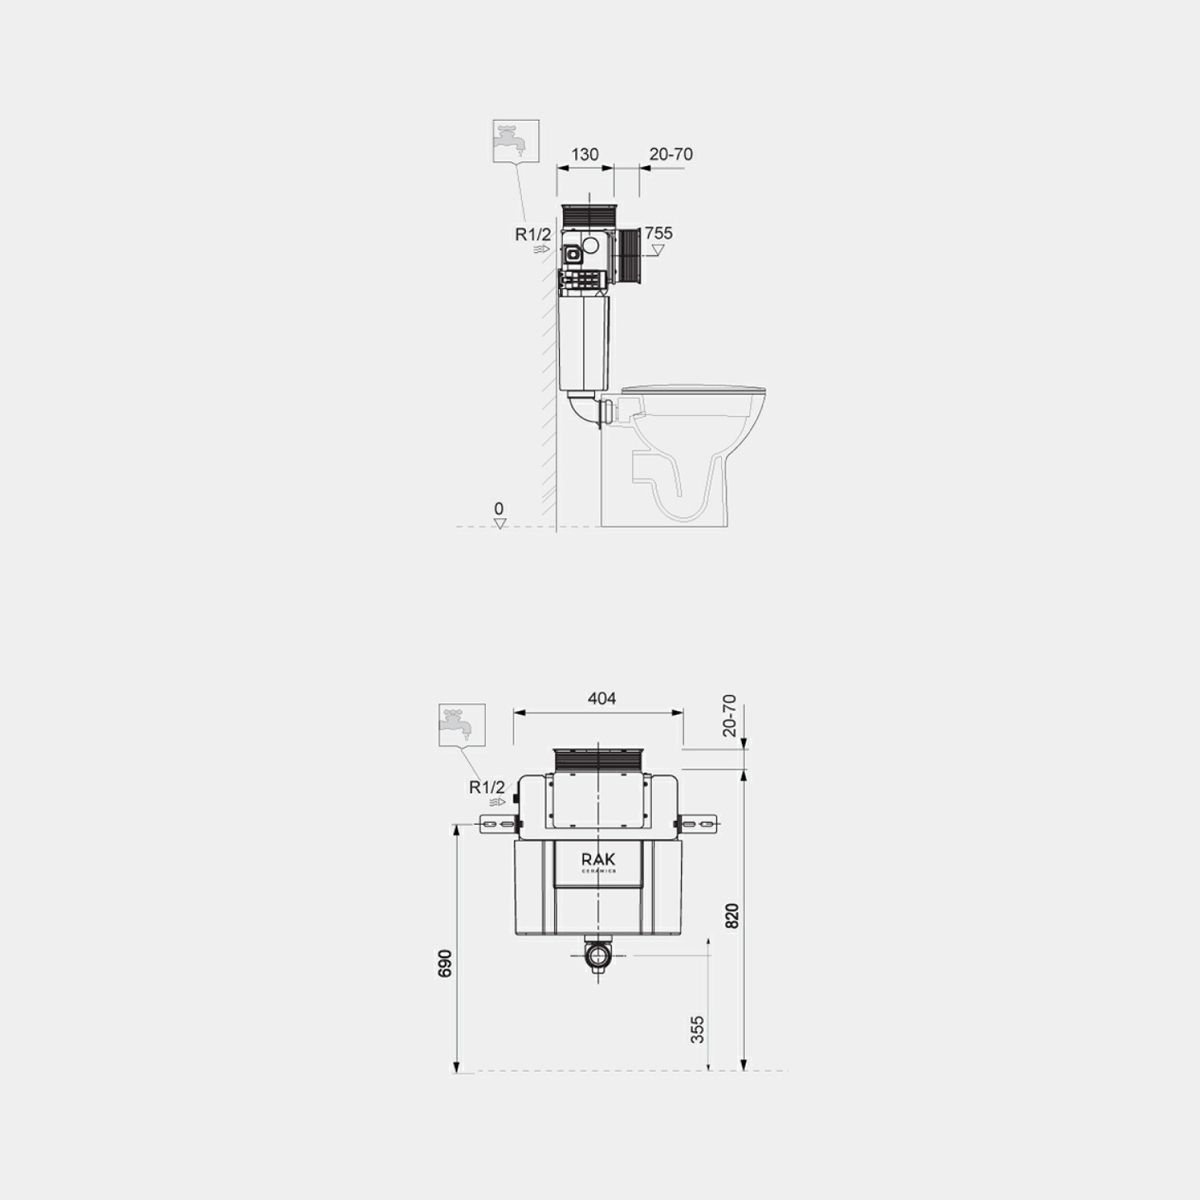 RAK Ecofix Top/Front Access Concealed Cistern Dimensions